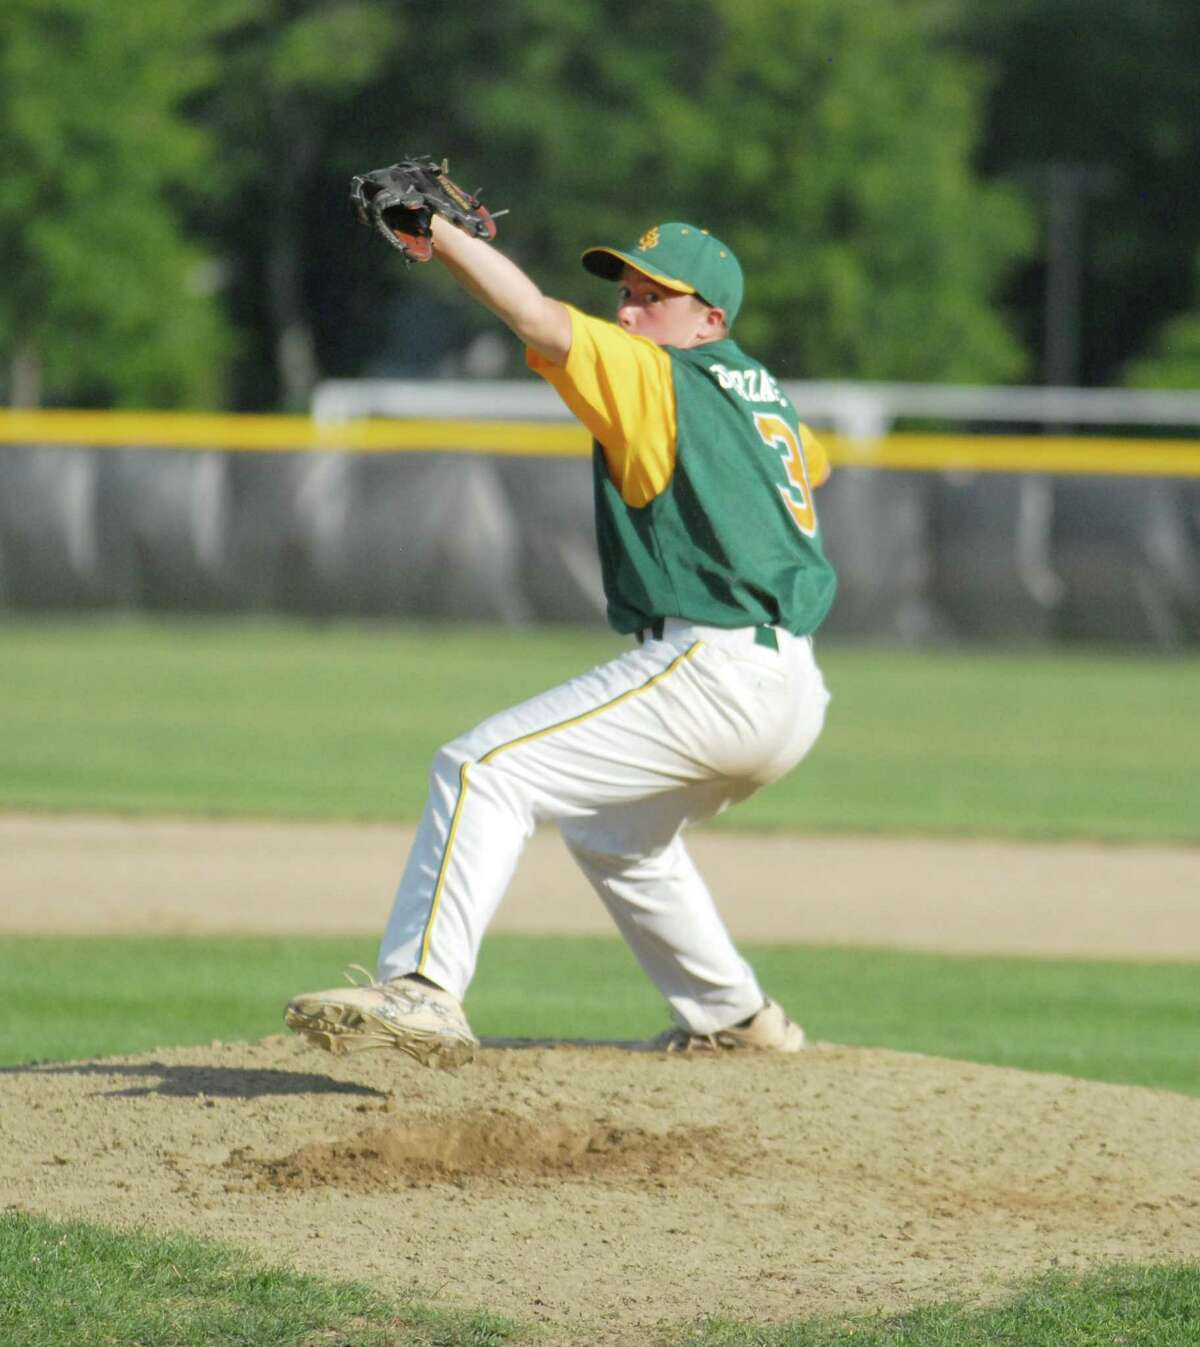 RCP's Cole Ogorzalek will be the starting pitcher when Post 105 faces Colchester (VT) today in the opening game of the Northeast Regional tournament at Muzzy Field in Bristol.